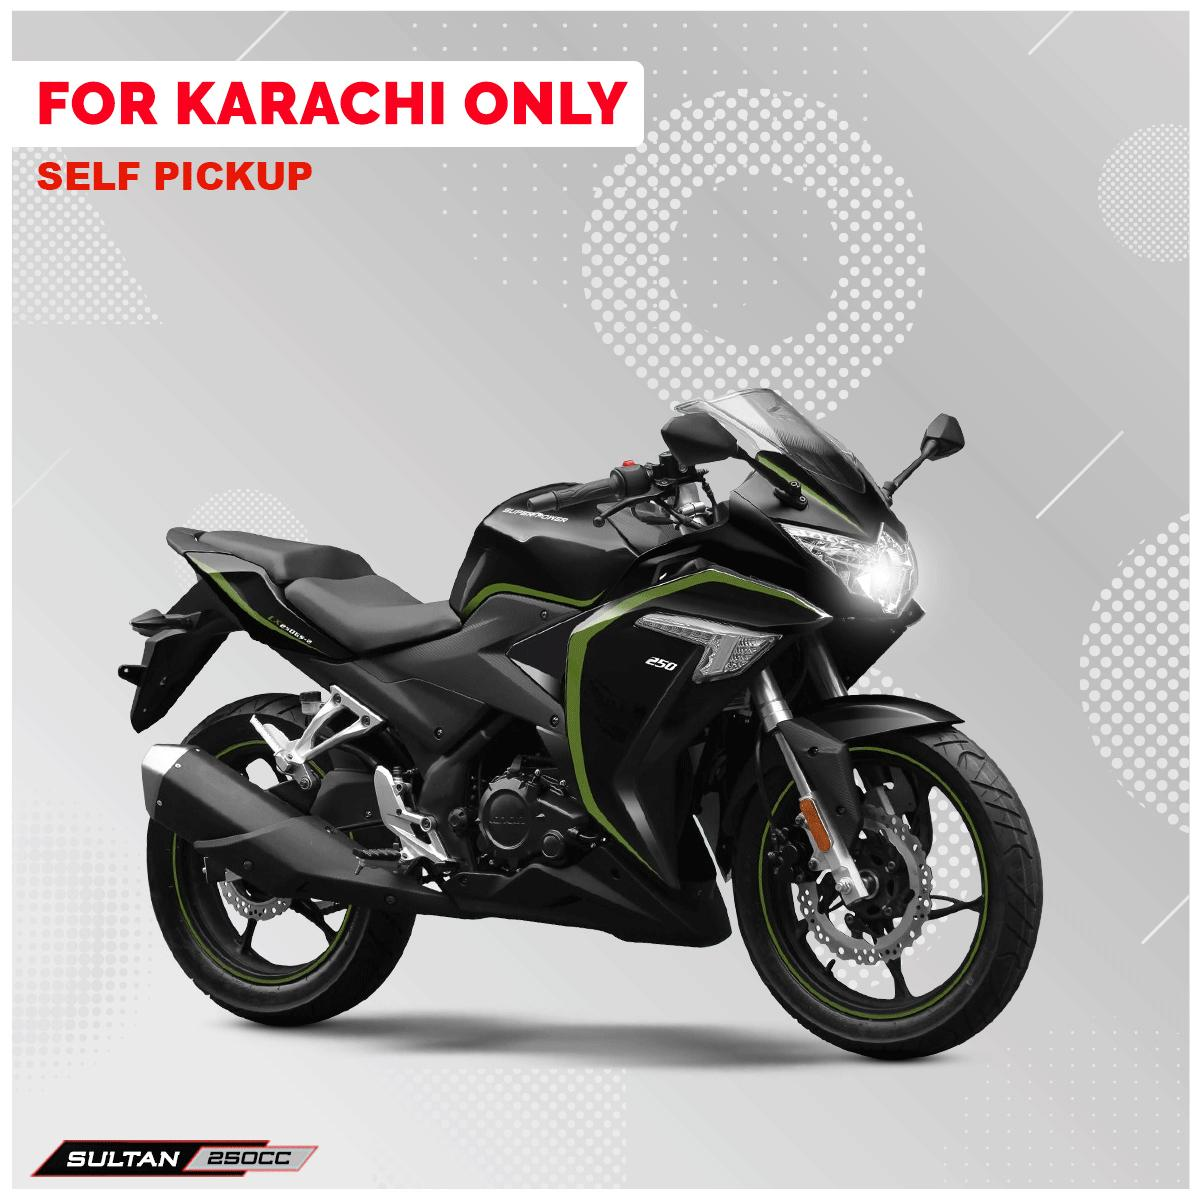 Automotive & Motorcycles Online Store in Pakistan - Daraz pk